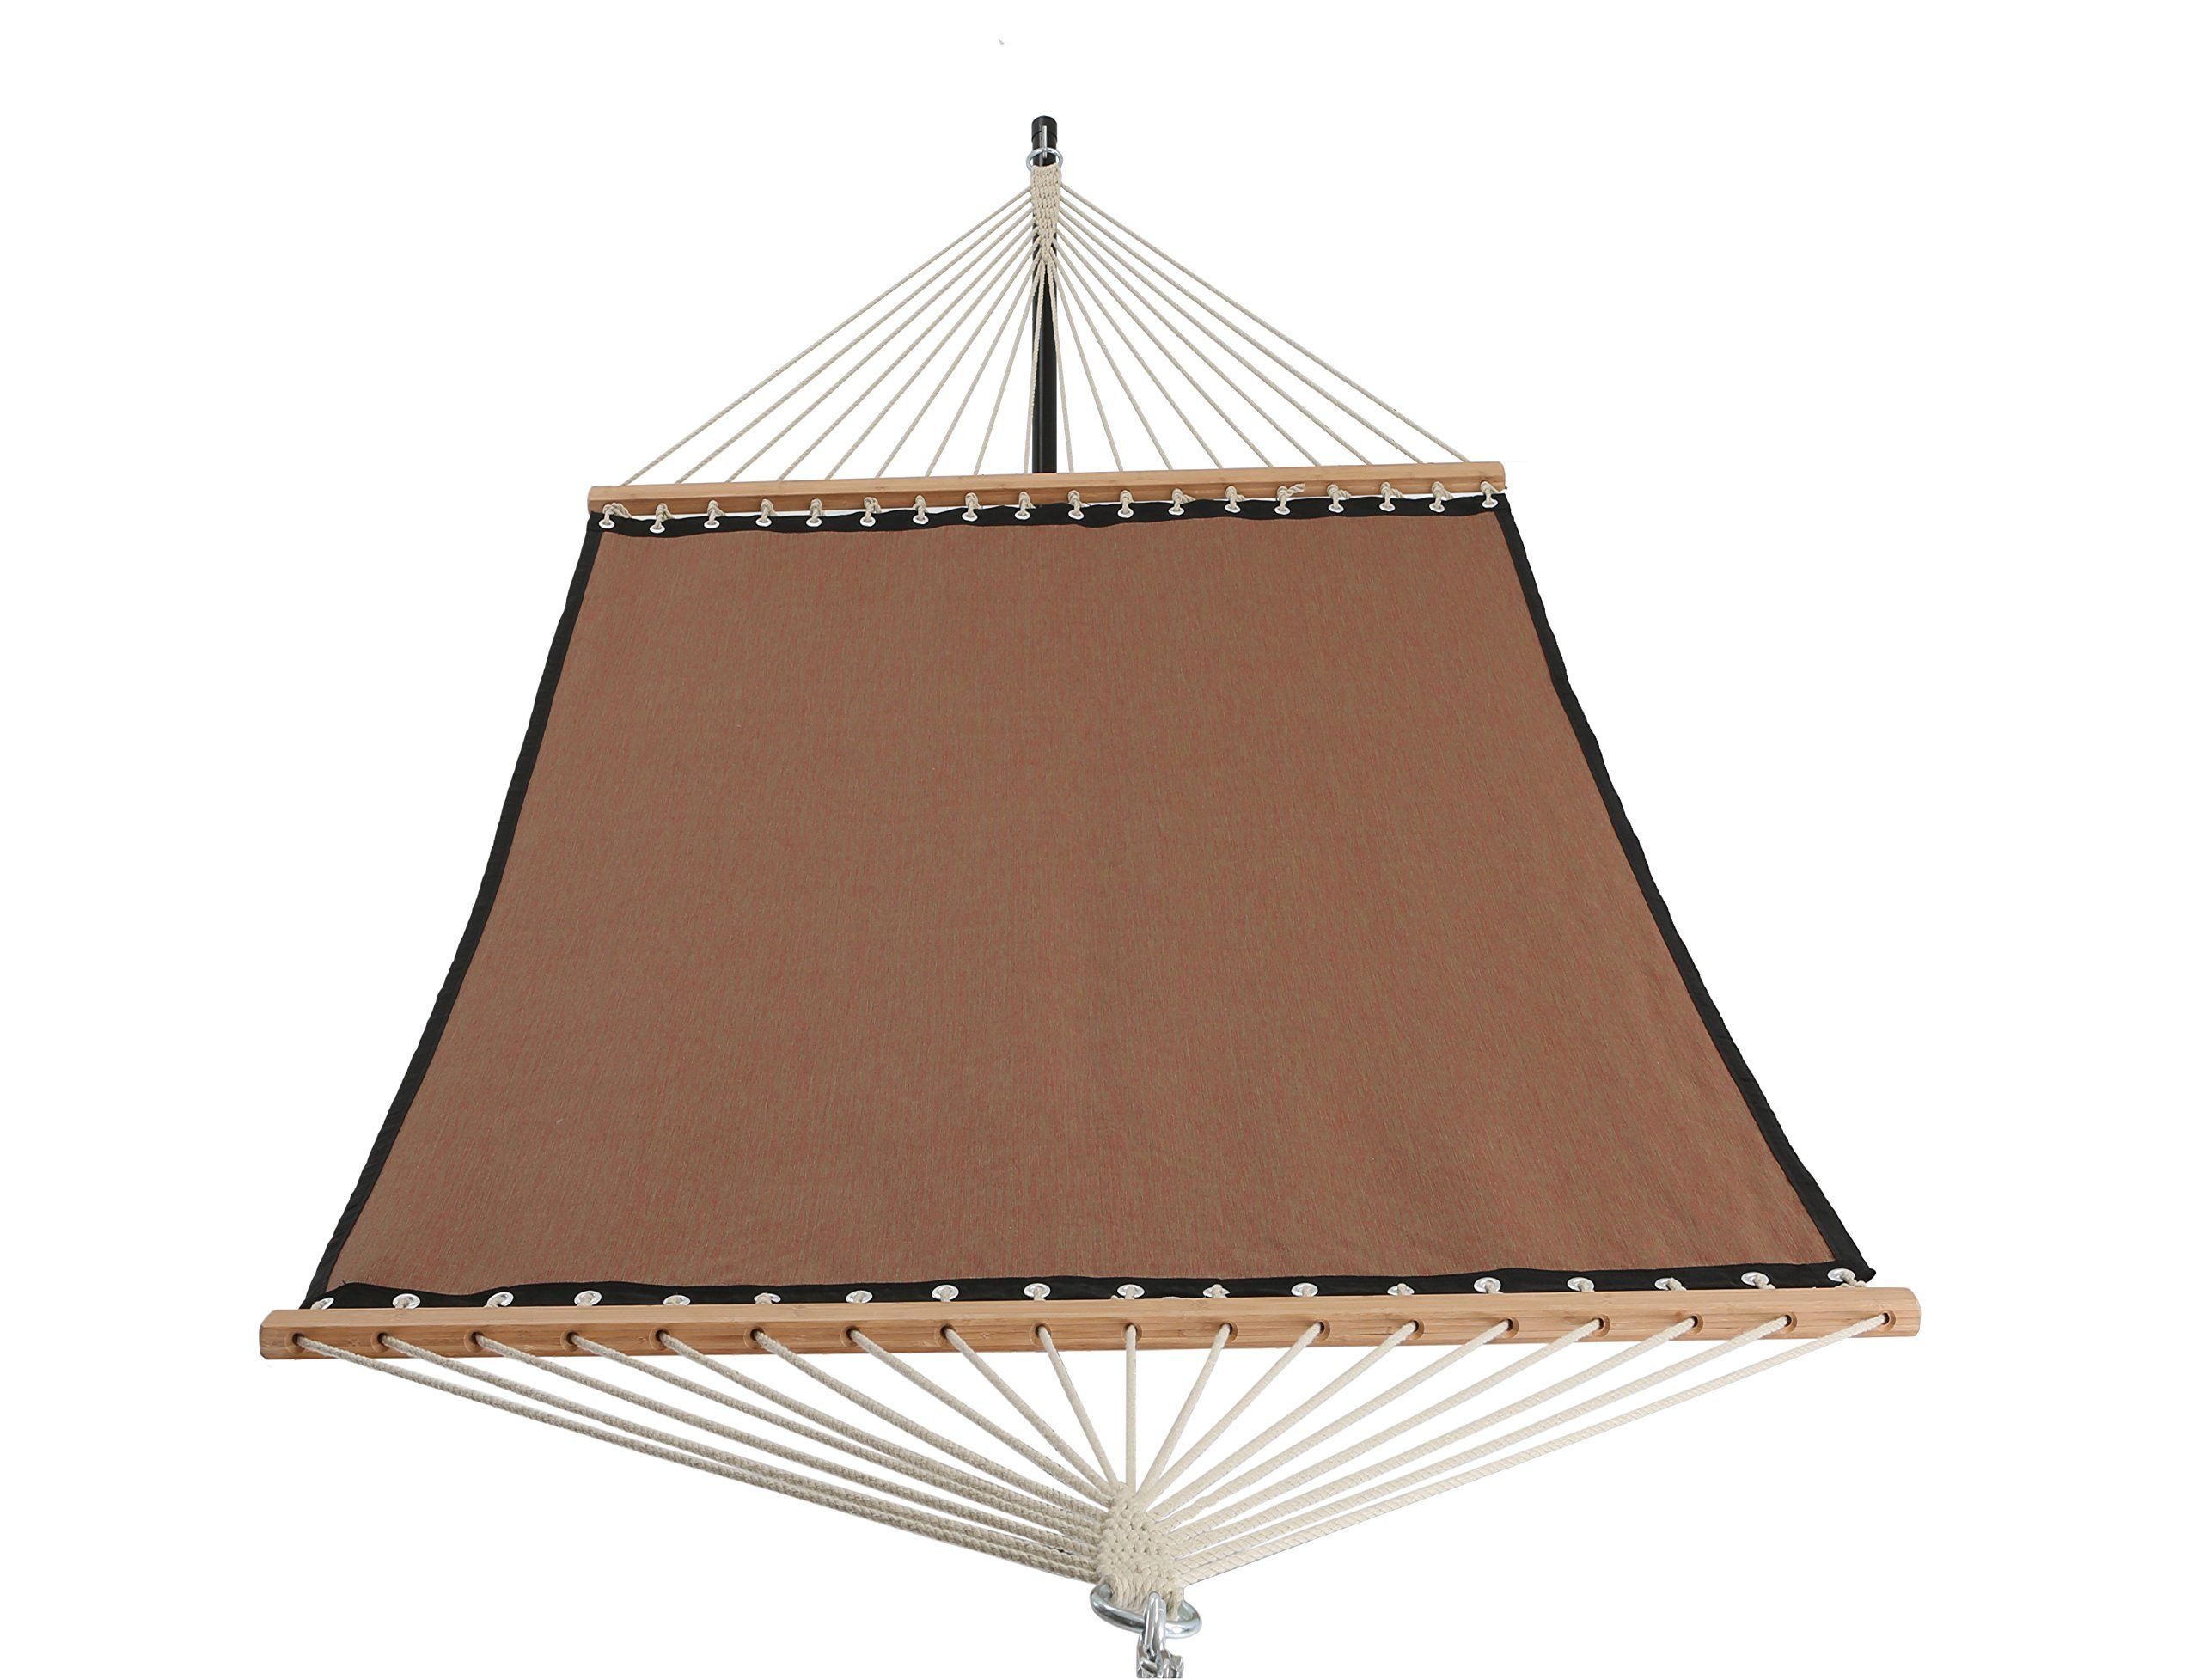 Patio Watcher 11 Ft Quick Dry Hammock Bamboo Spreader Bars Outdoor Patio Yard Poolside Hammock With Chain Hanging Kits And Hooks Textilene And Olefin Material